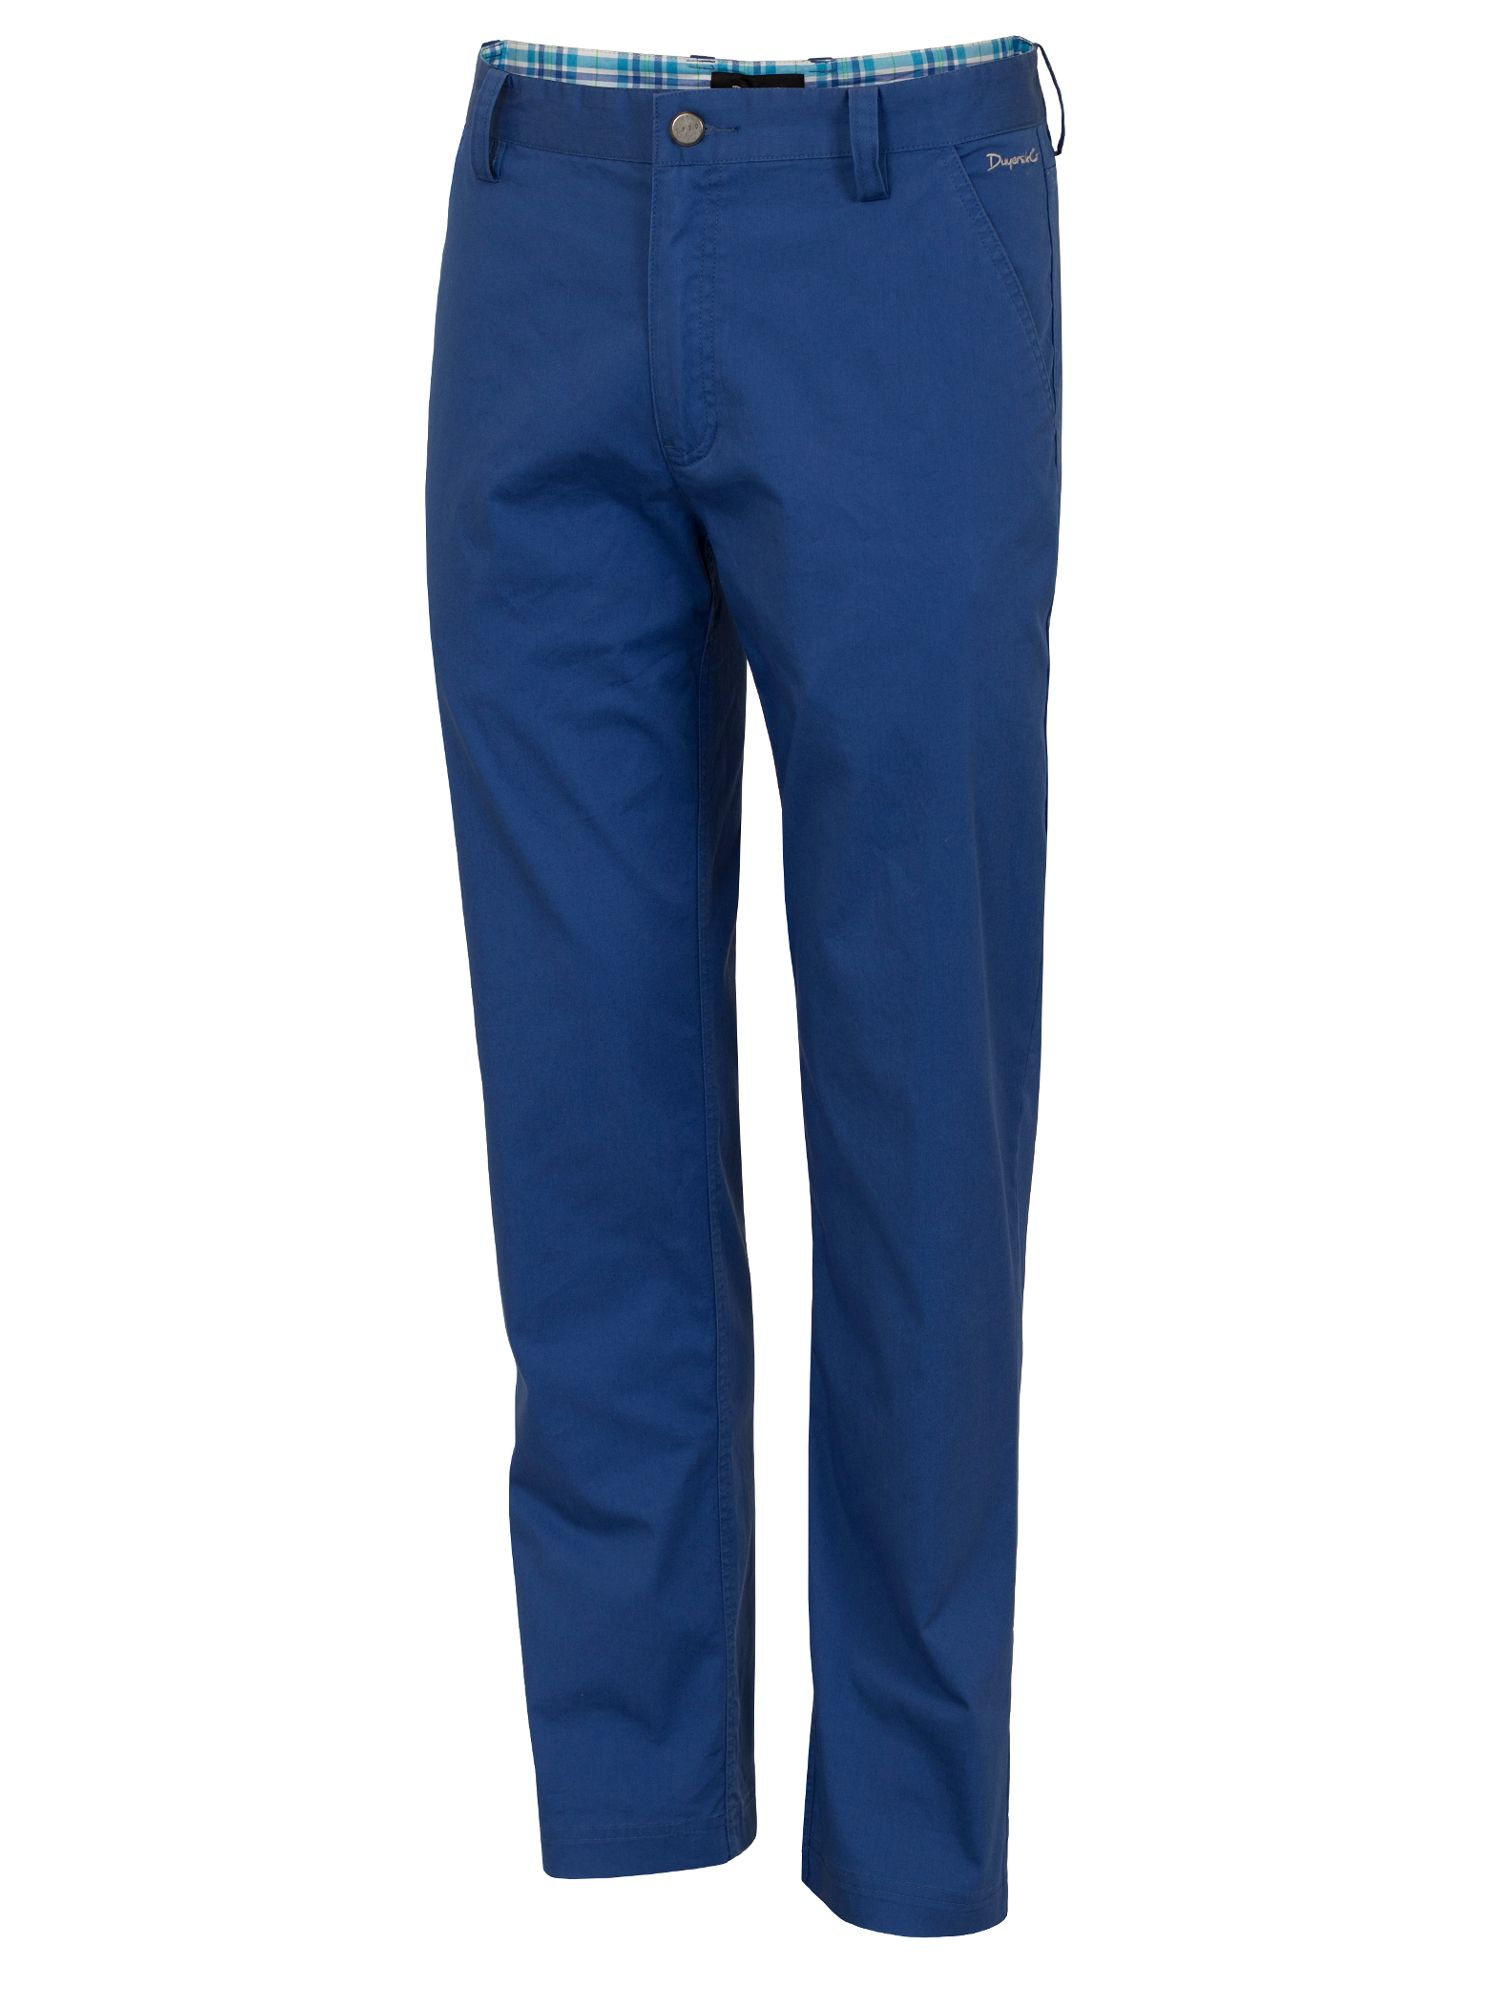 Dwyers and Co Men's Dwyers and Co Titanium chino trouser, Blue